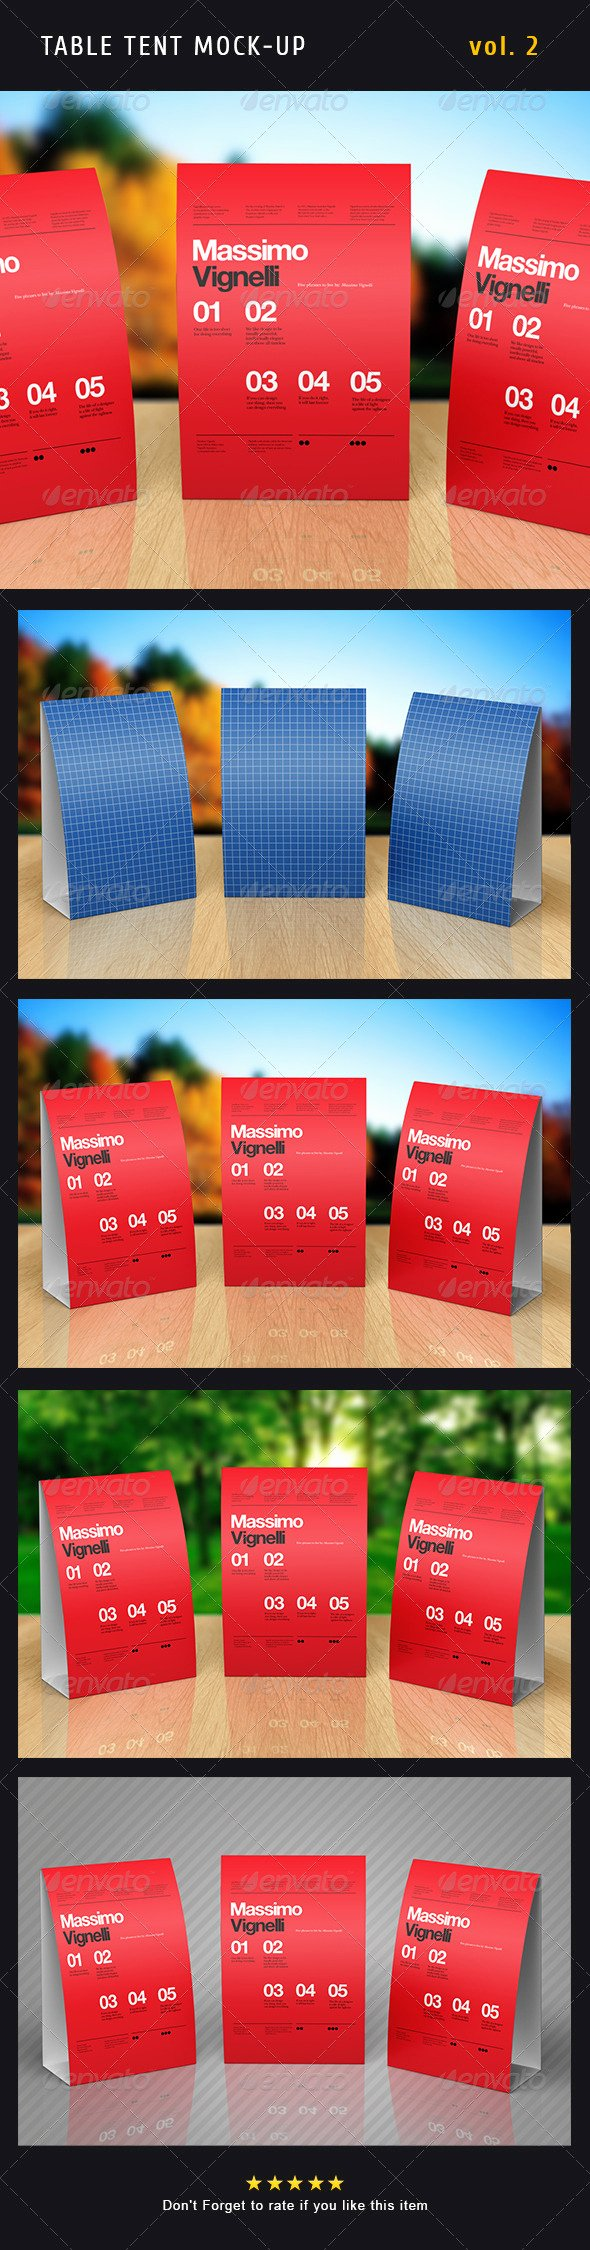 Table Tent Template Photoshop Luxury Paper Table Tent Mock Up Template Vol 2 Promotion